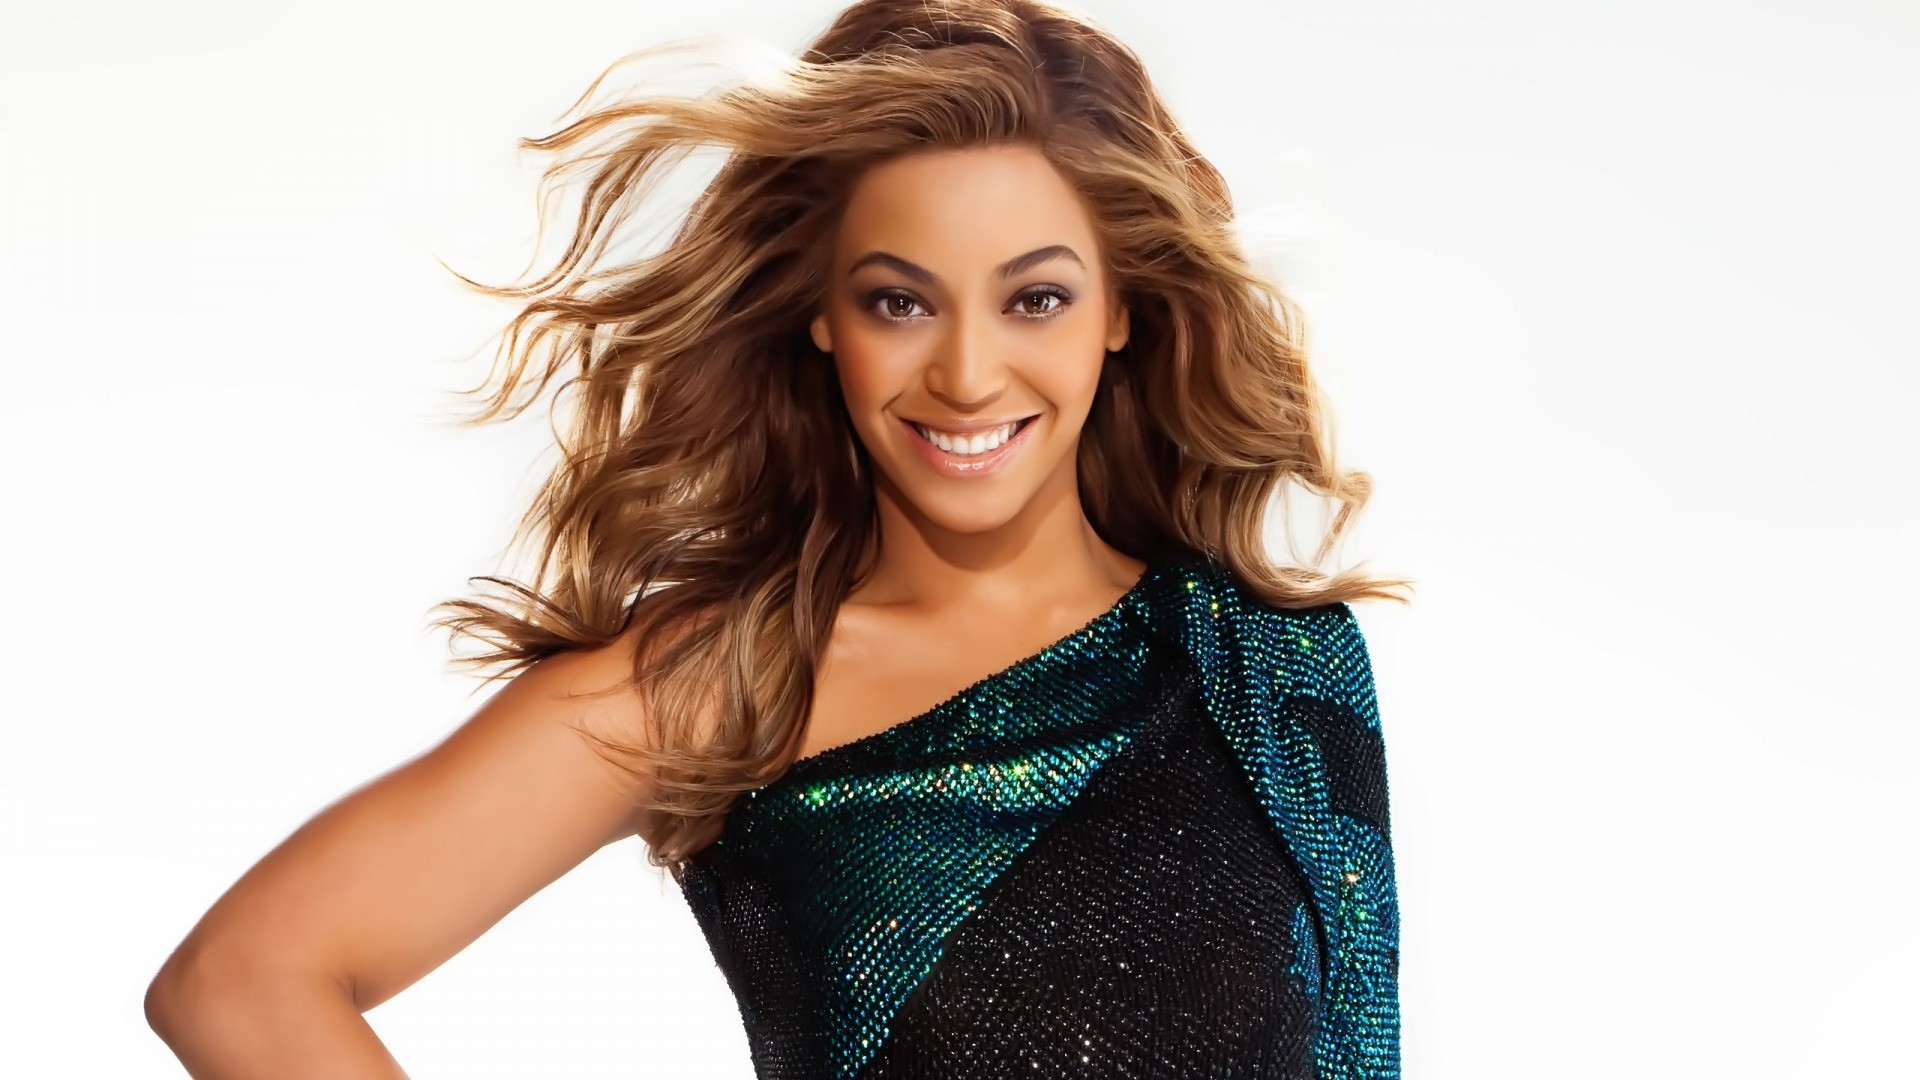 Beyonce-Knowles-http-www-firsthd-com-beyonce-knowles-html-wallpaper-wp6002331